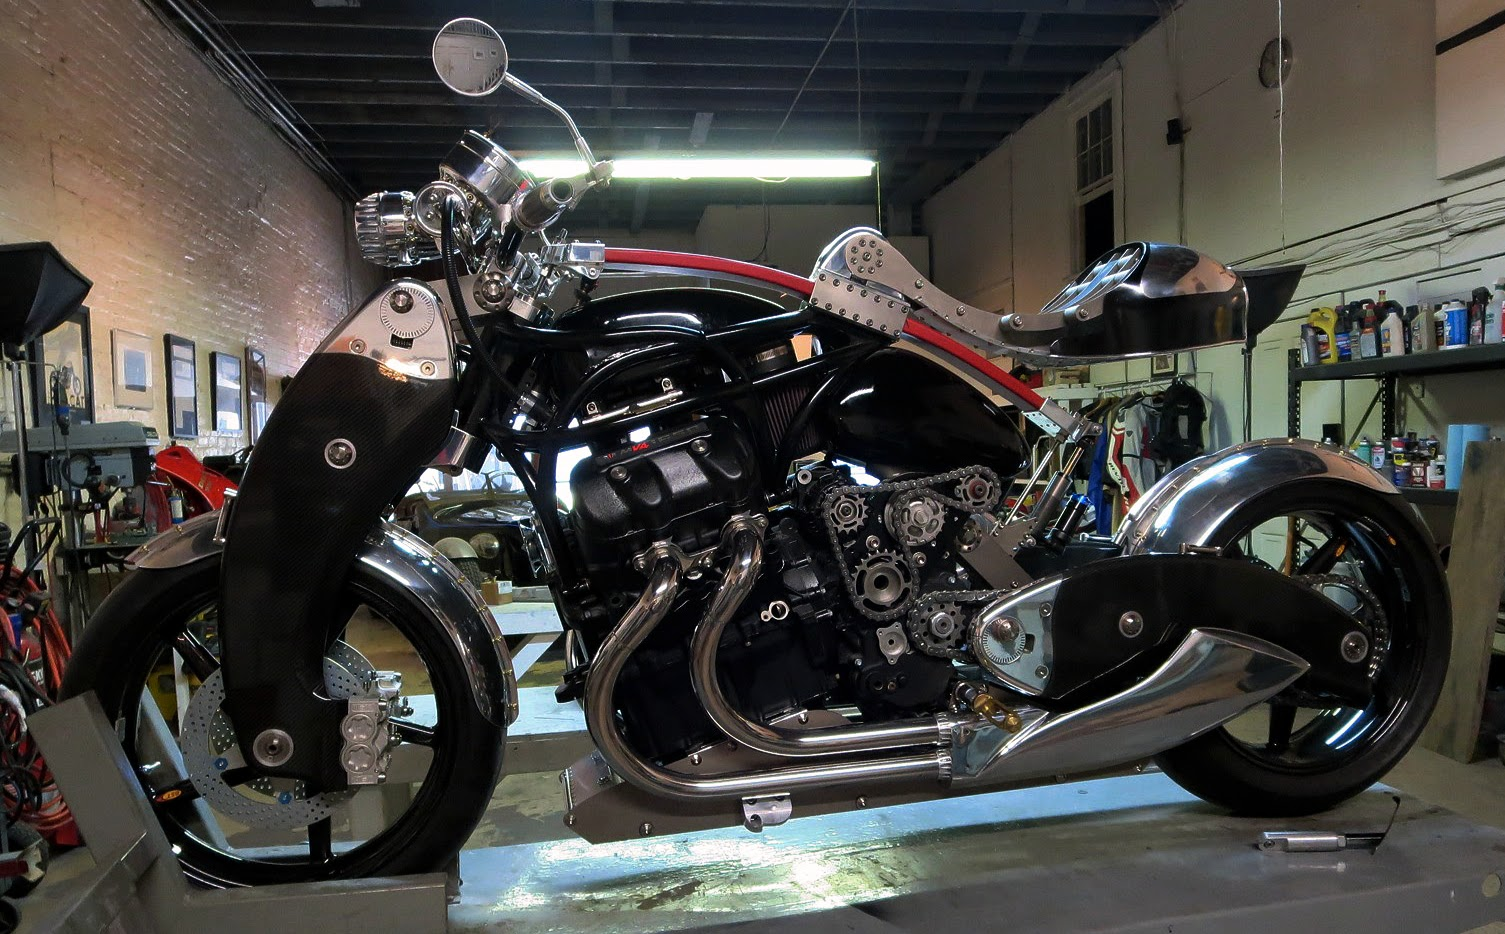 Harley Davidson Motorcycle Values >> OddBike: Bienville Legacy - The American Super Bike